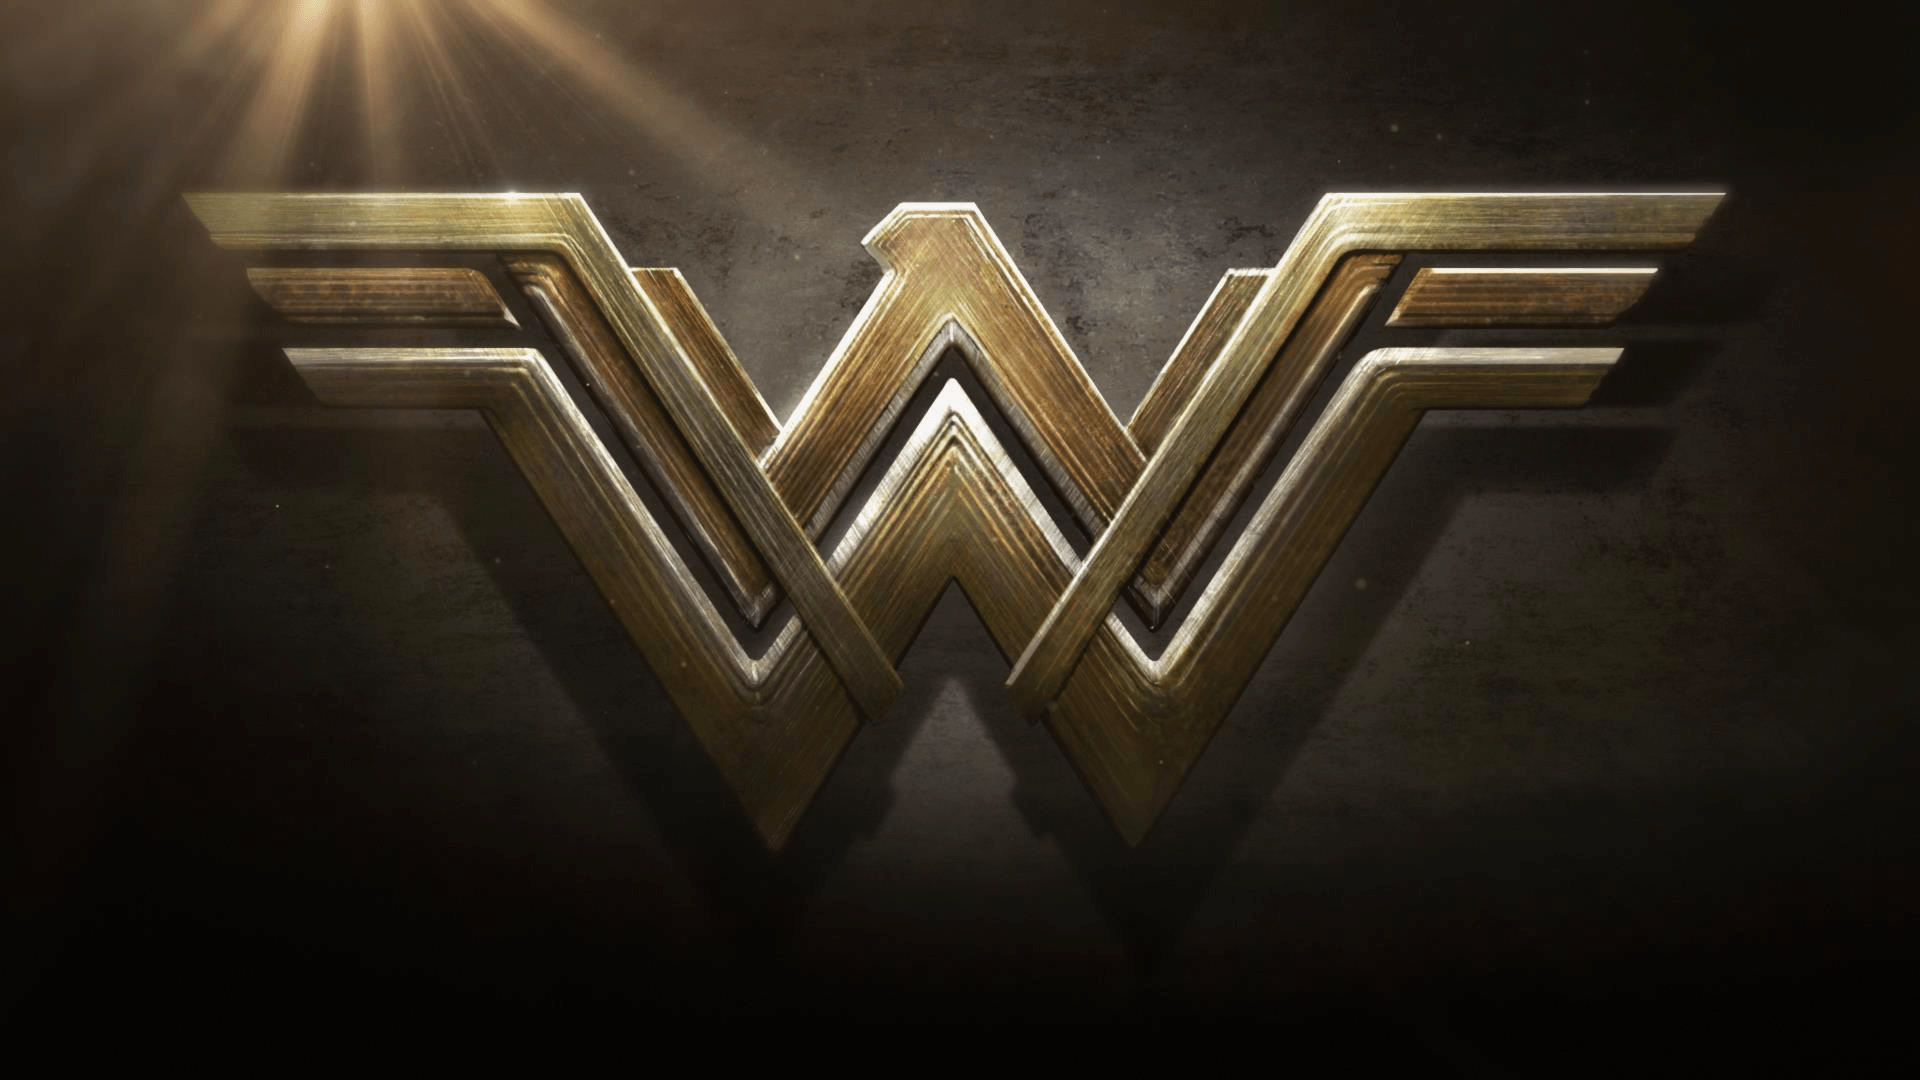 20 Wonder Woman HD Wallpapers | Backgrounds - Wallpaper Abyss